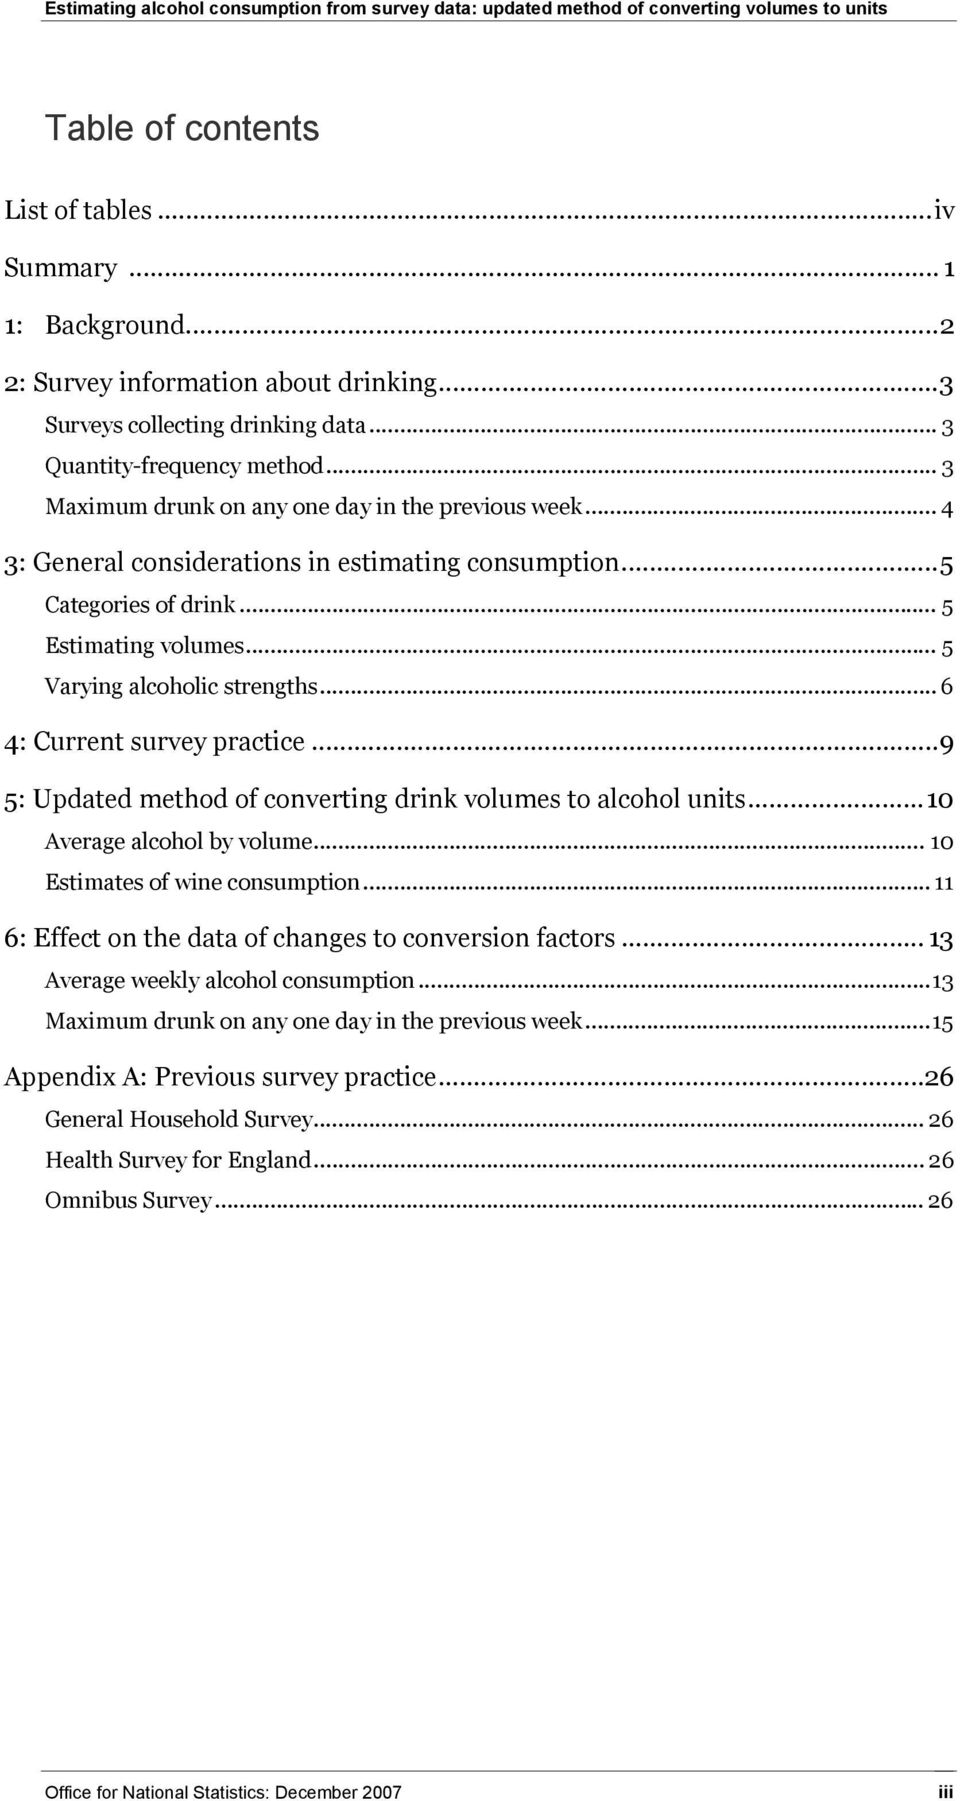 .. 5 Estimating volumes... 5 Varying alcoholic strengths... 6 4: Current survey practice...9 5: Updated of converting drink volumes to alcohol units...10 Average alcohol by volume.